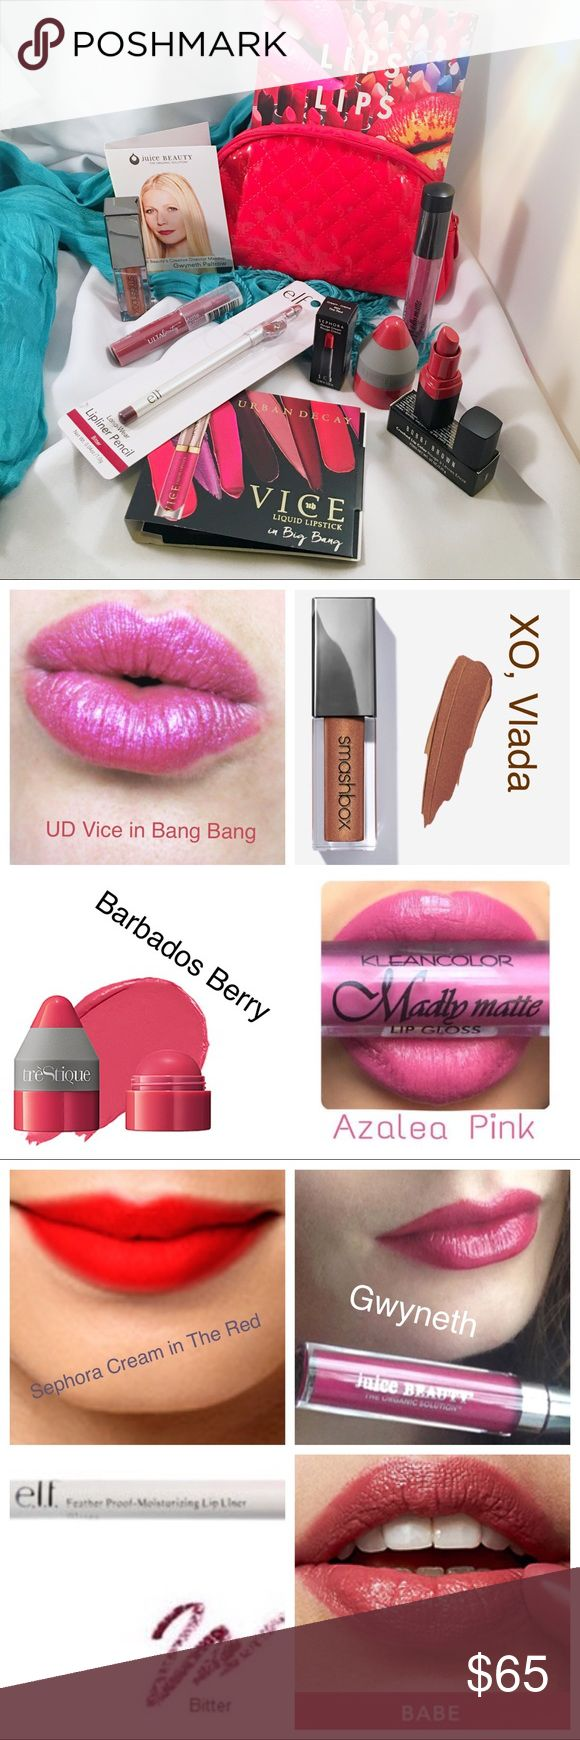 SEPHORA + ULTA Lip, Lip, Lip Custom Kit 10 new lip color products to try. Includes: Full size Smashbox Always On in XO, Vlada; Urban Decay Deluxe Vice in Bang Bang; Trestique Deluxe Plumping Balm in Barbados Berry; Juice Beauty Deluxe Liquid Gloss in Gwyneth; Kleancolor Full Size Madly Matte in Azalea Punk; Bobbi Brown Deluxe Crushed in Babe; Sephora Deluxe Cream in The Red; elf Full Size Pencil in Bitter; Ulta Deluxe Matte Lip Crayon in Soirée; MAC Sample Card with Velvet Teddy, Ruby Woo…